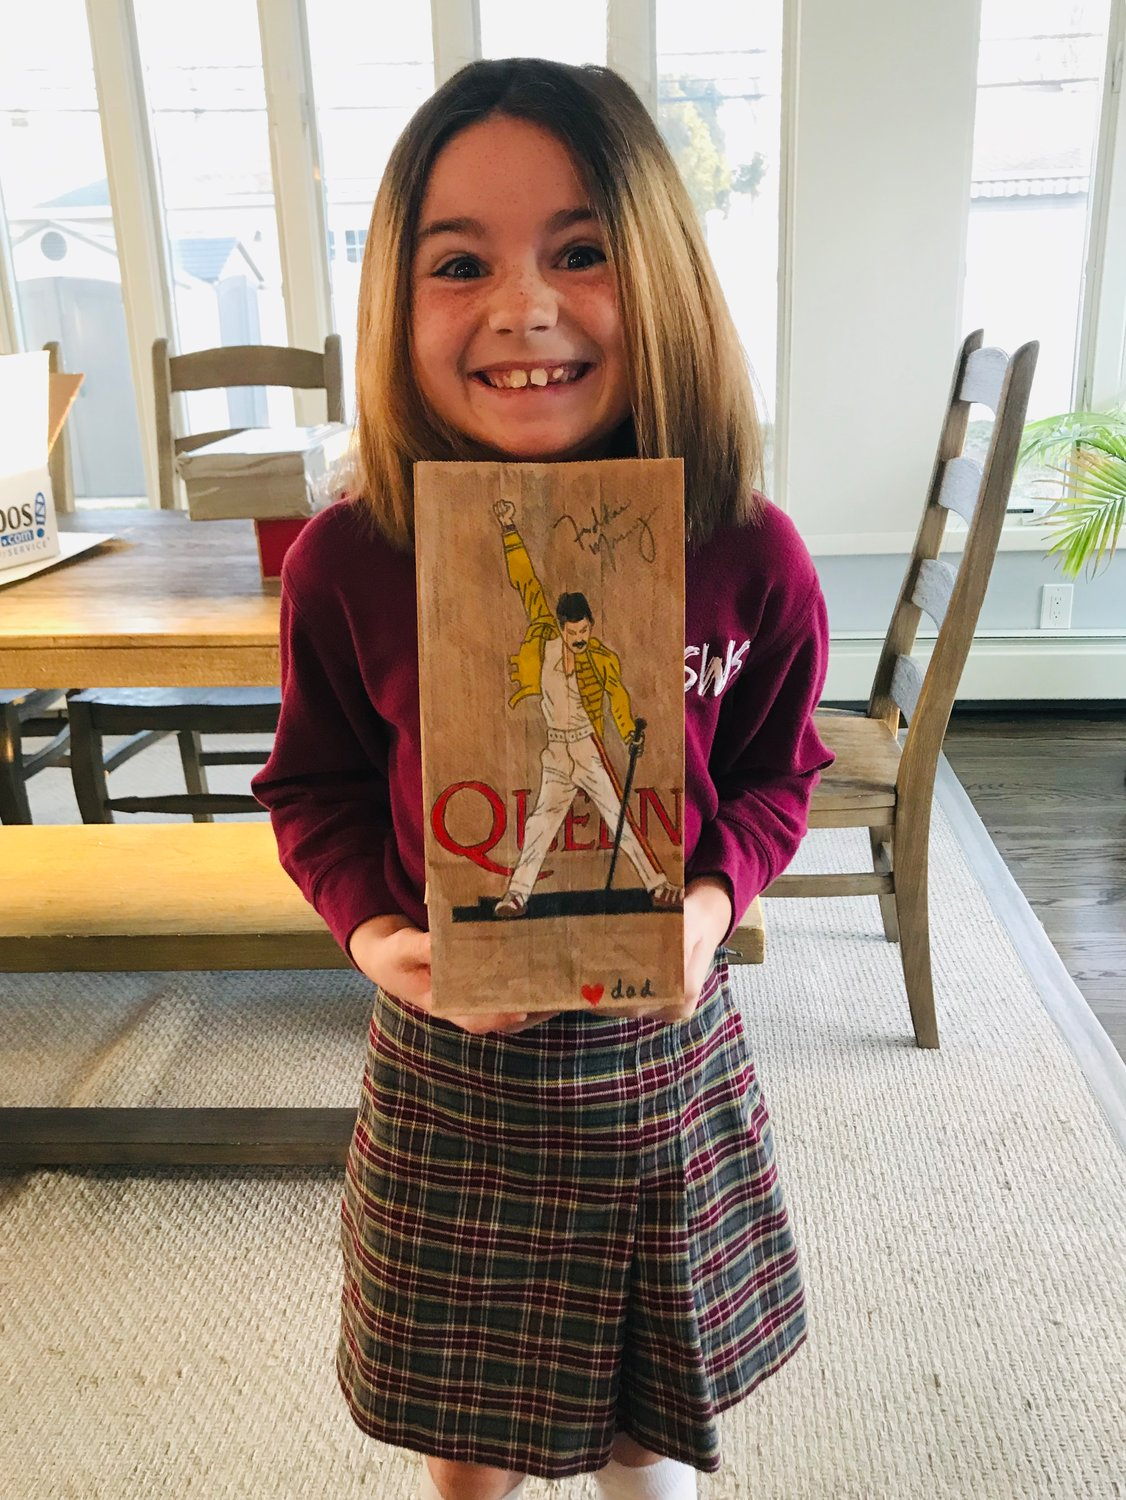 Molly with her Freddie Mercury bag, created by her father one day last week.